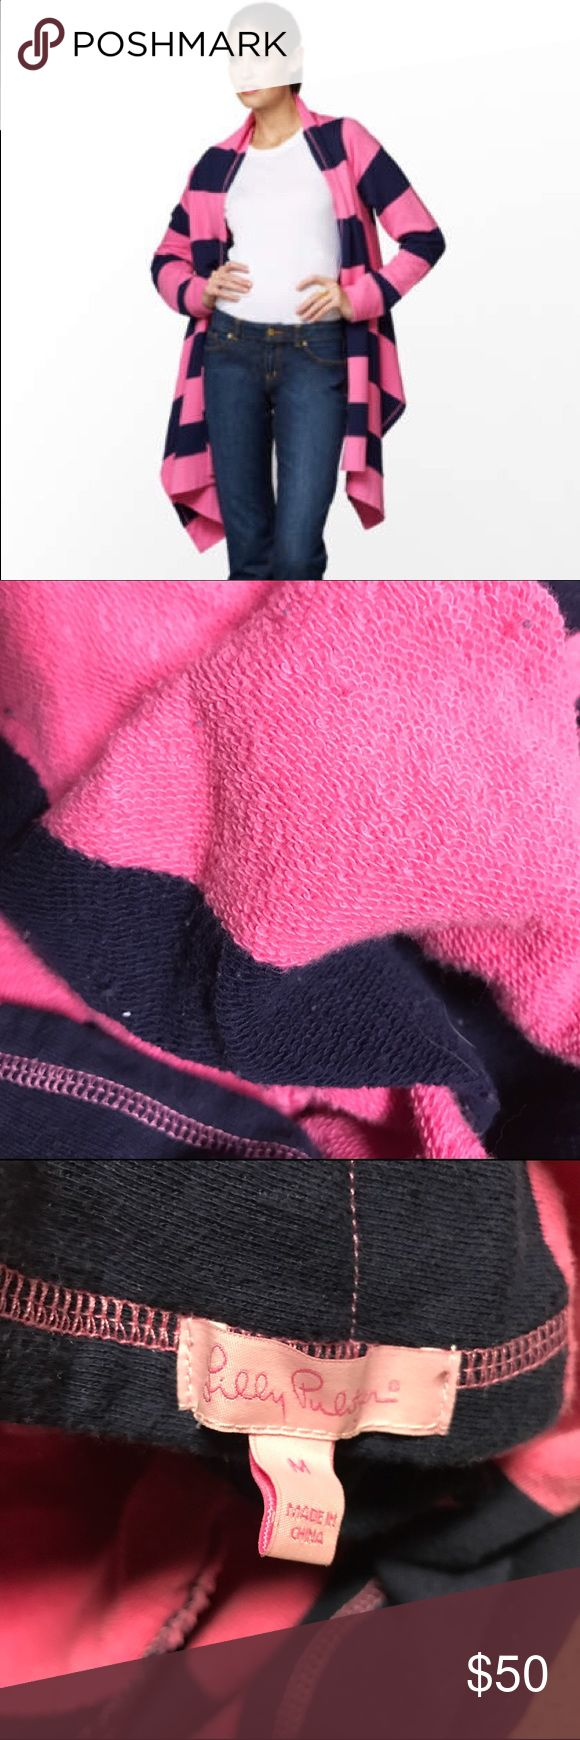 Lilly Pulitzer norma wrap cardigan striped Size medium, terry knit cardigan in a pink and dark blue stripe. Really hard to photograph this well so used the stock photo to show the product. Warm and comfortable! In good condition with no flaws that I can find. Feel free to make offers no trades or 'lowest price?' Thanks! Lilly Pulitzer Sweaters Cardigans